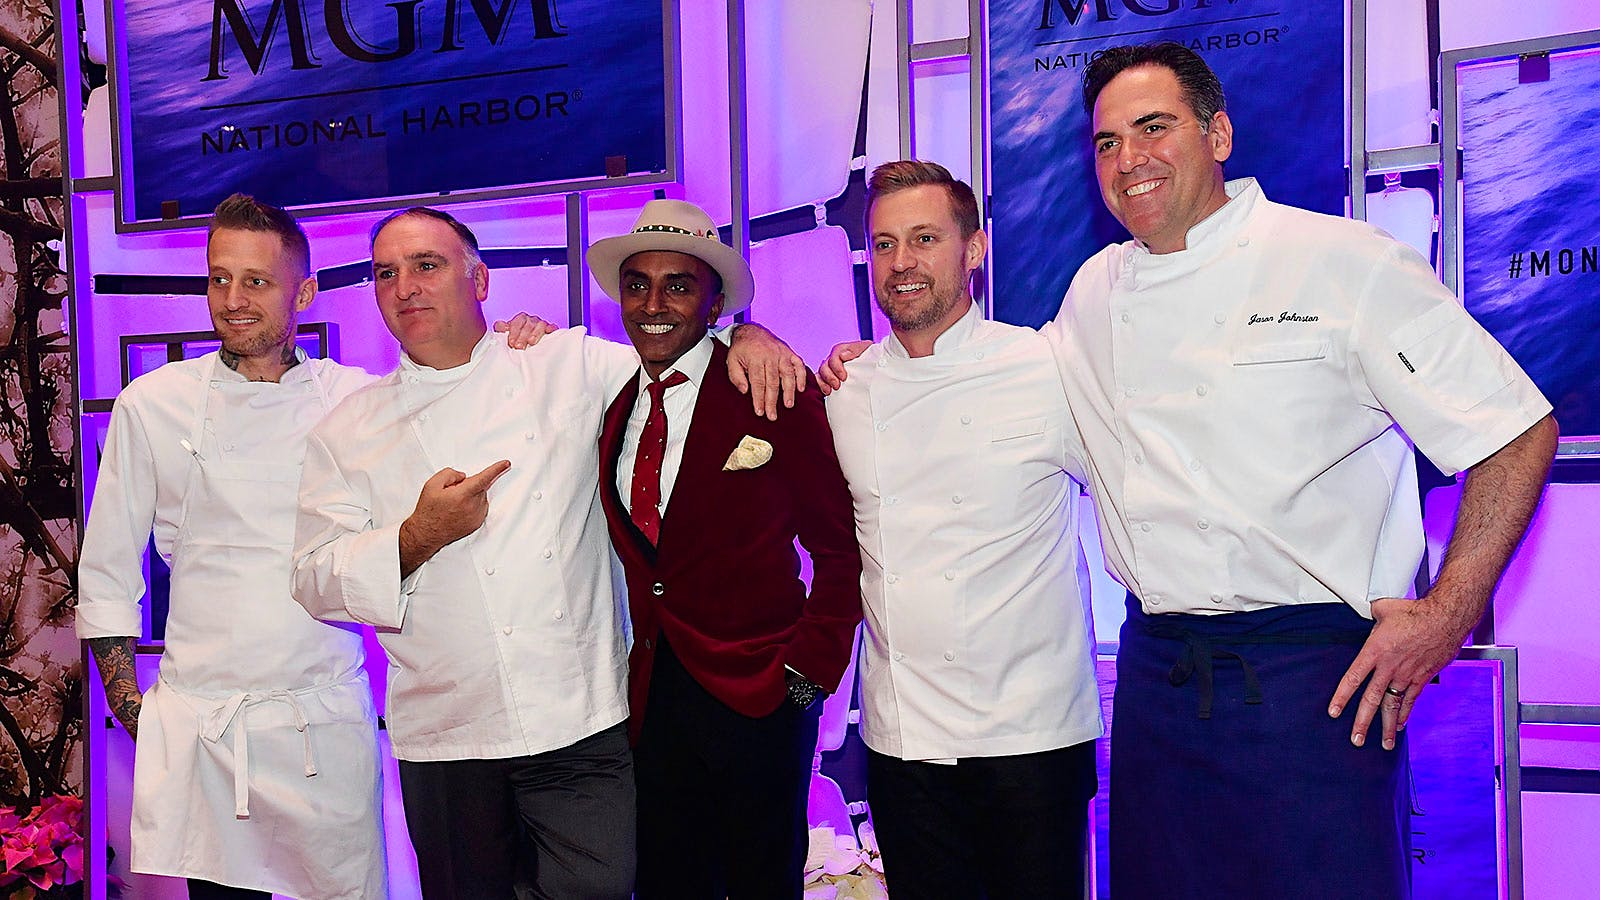 Dining Destination MGM National Harbor Opens in Washington, D.C.